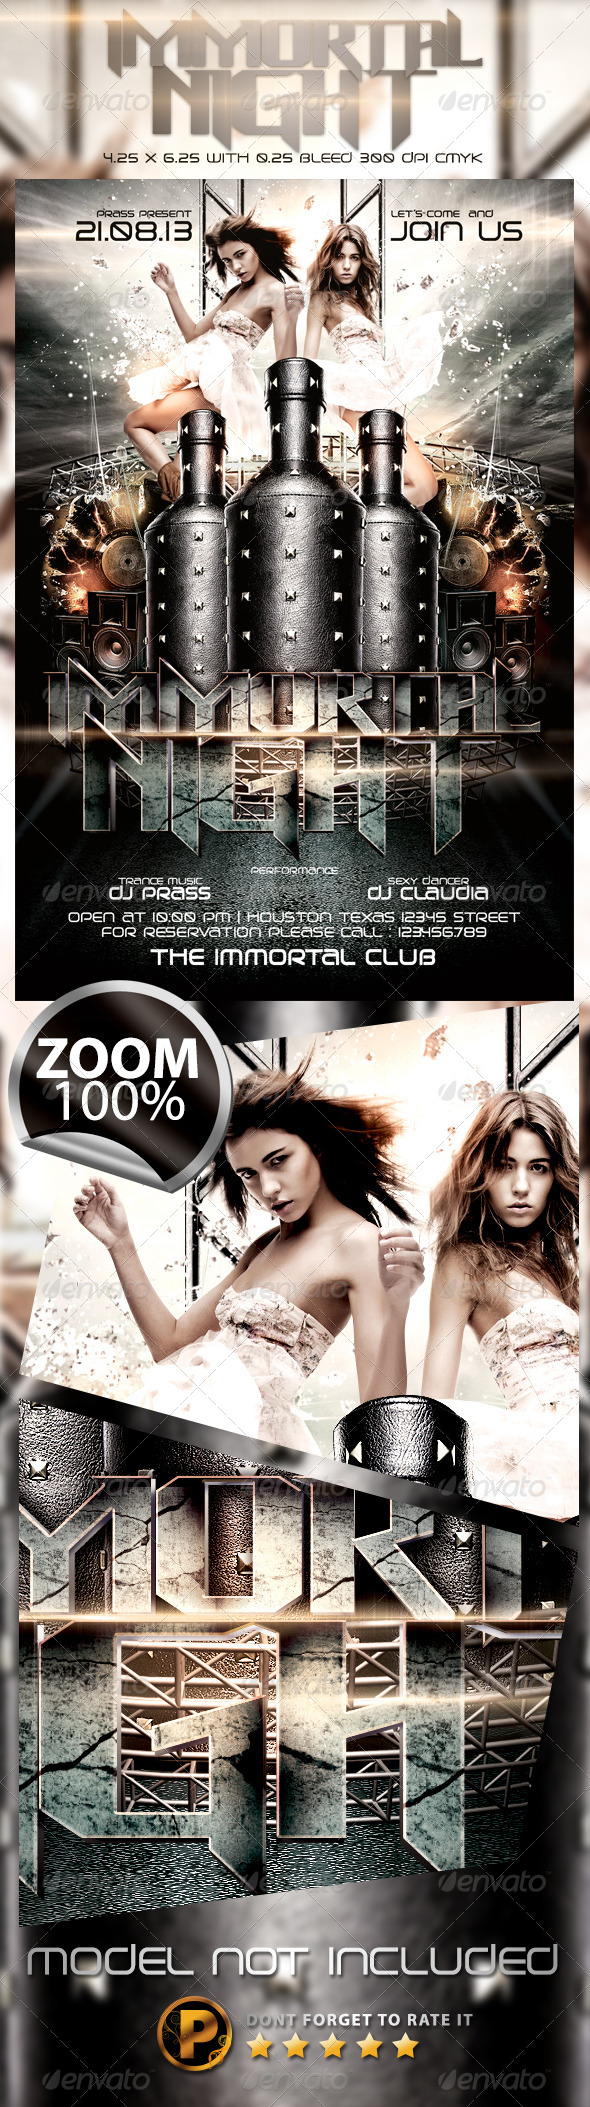 Immortal Night Flyer Template - Clubs & Parties Events